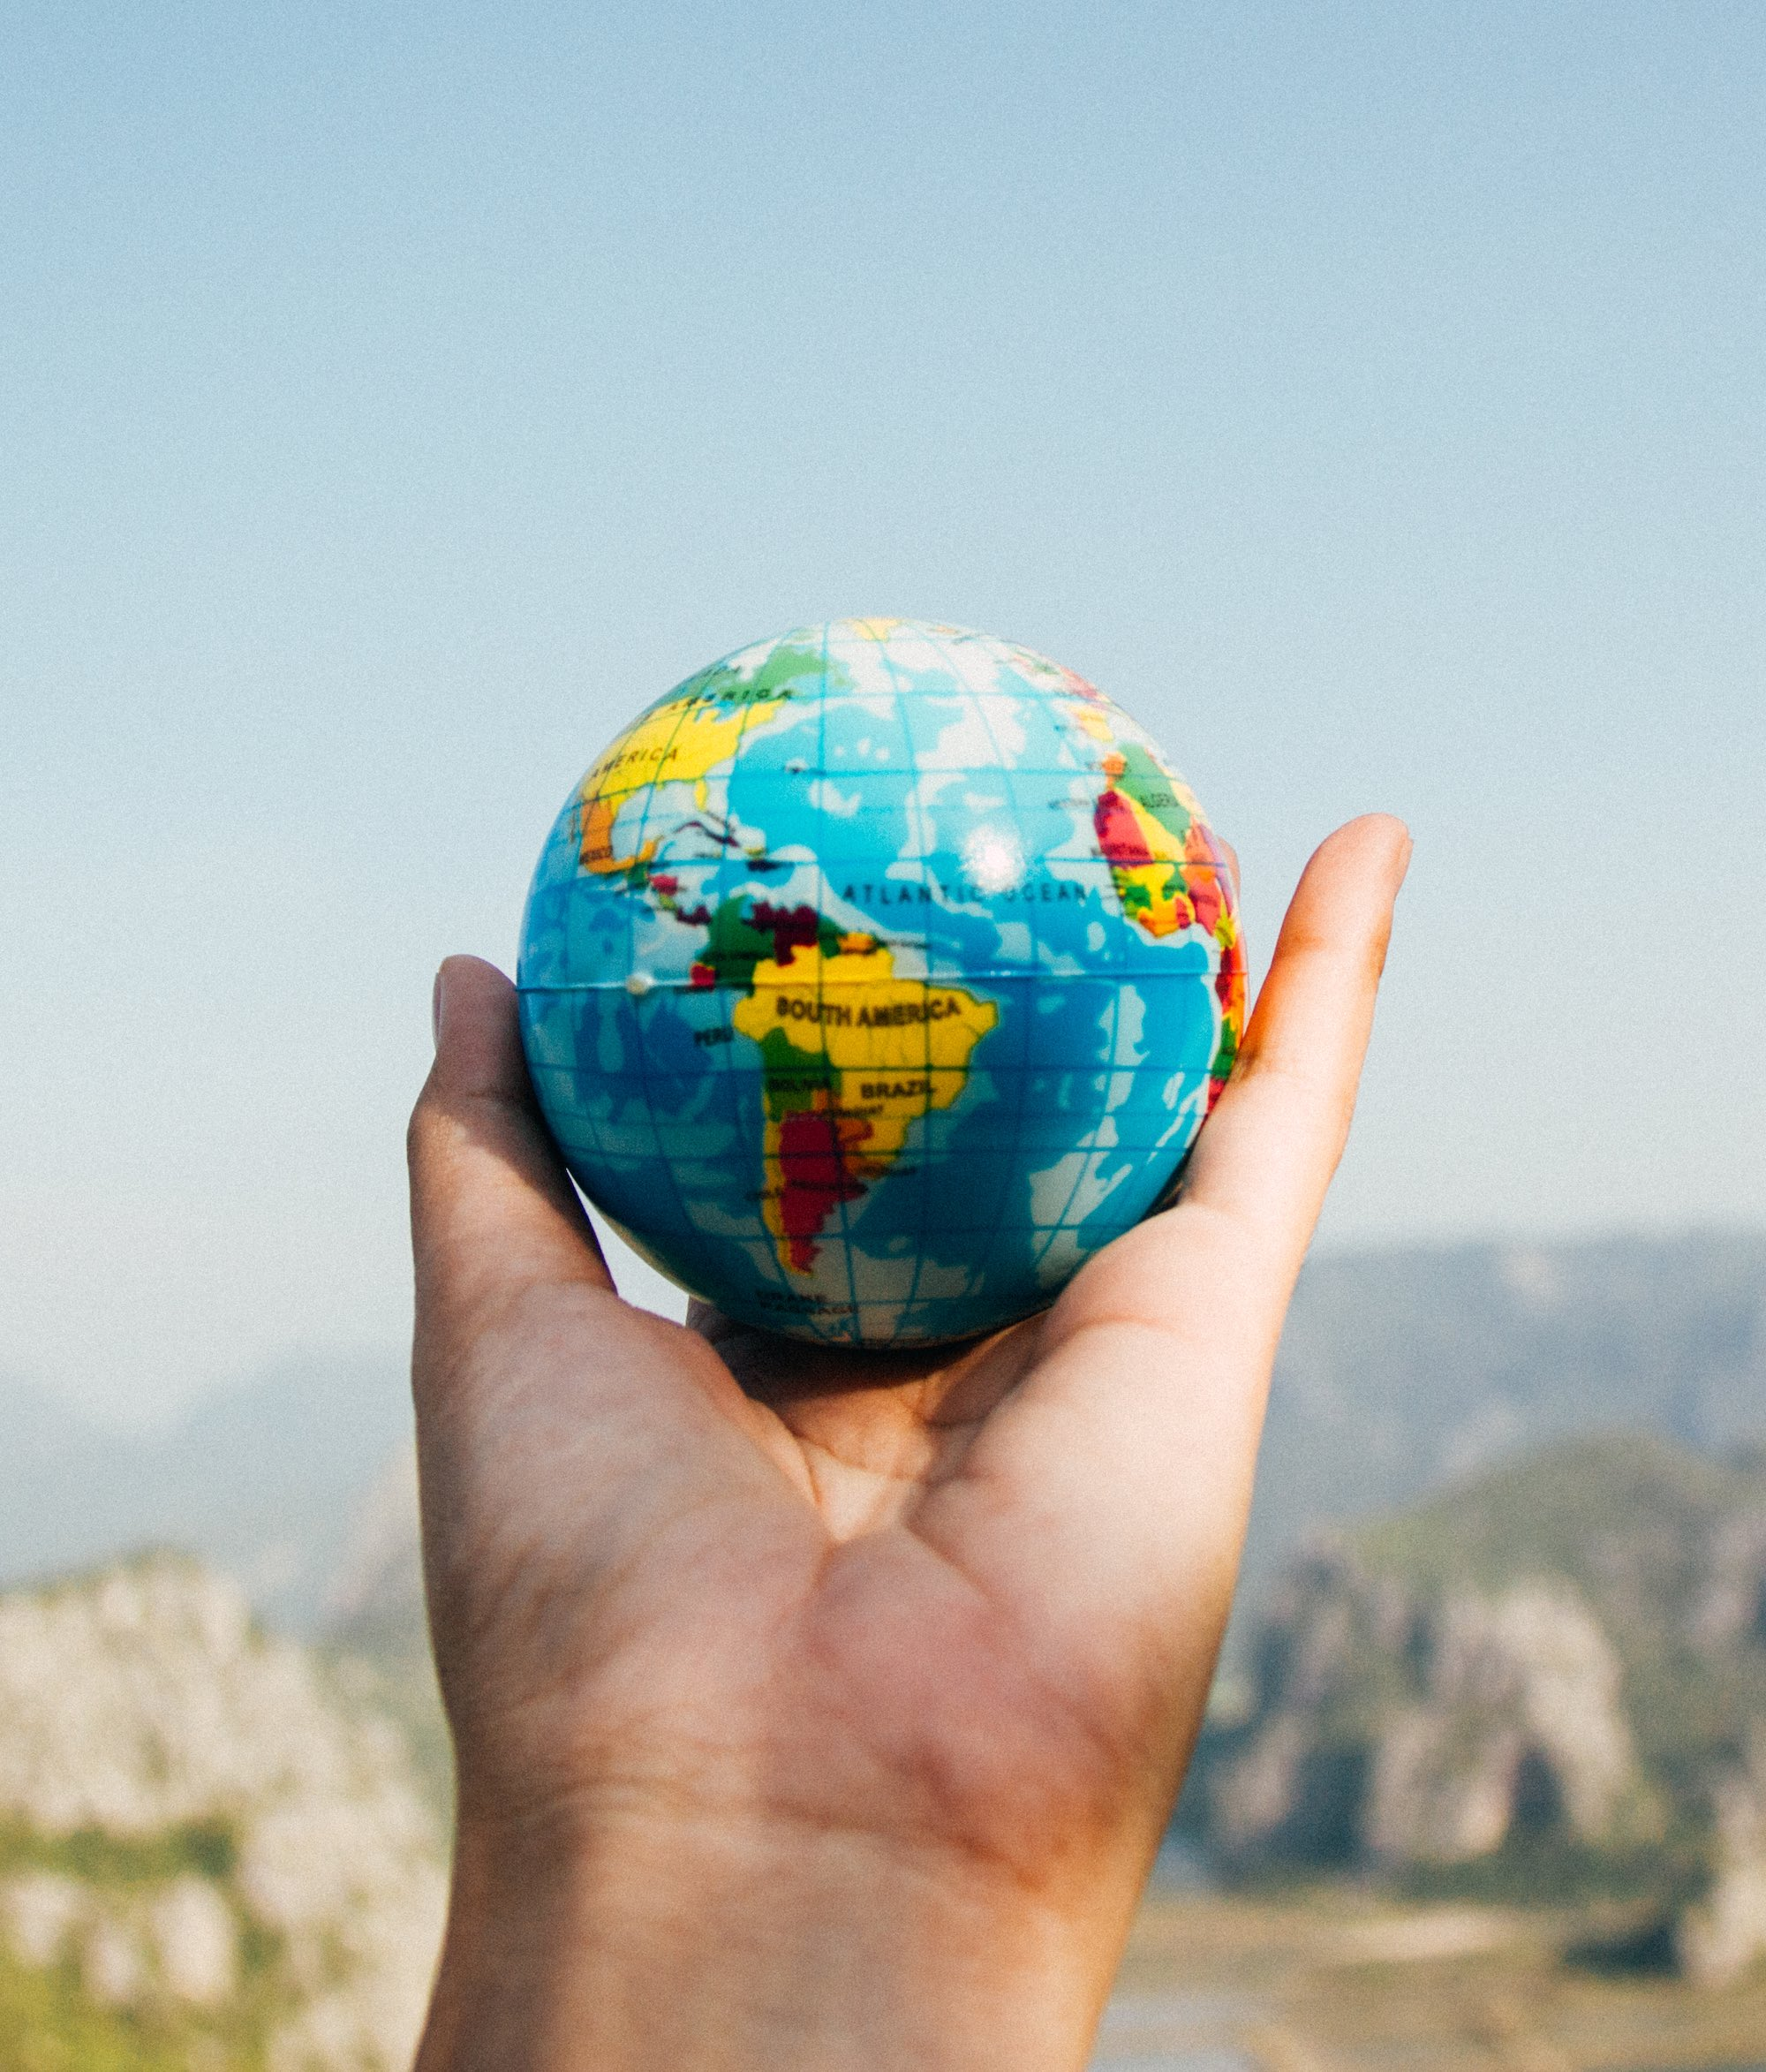 a hand holding a small globe